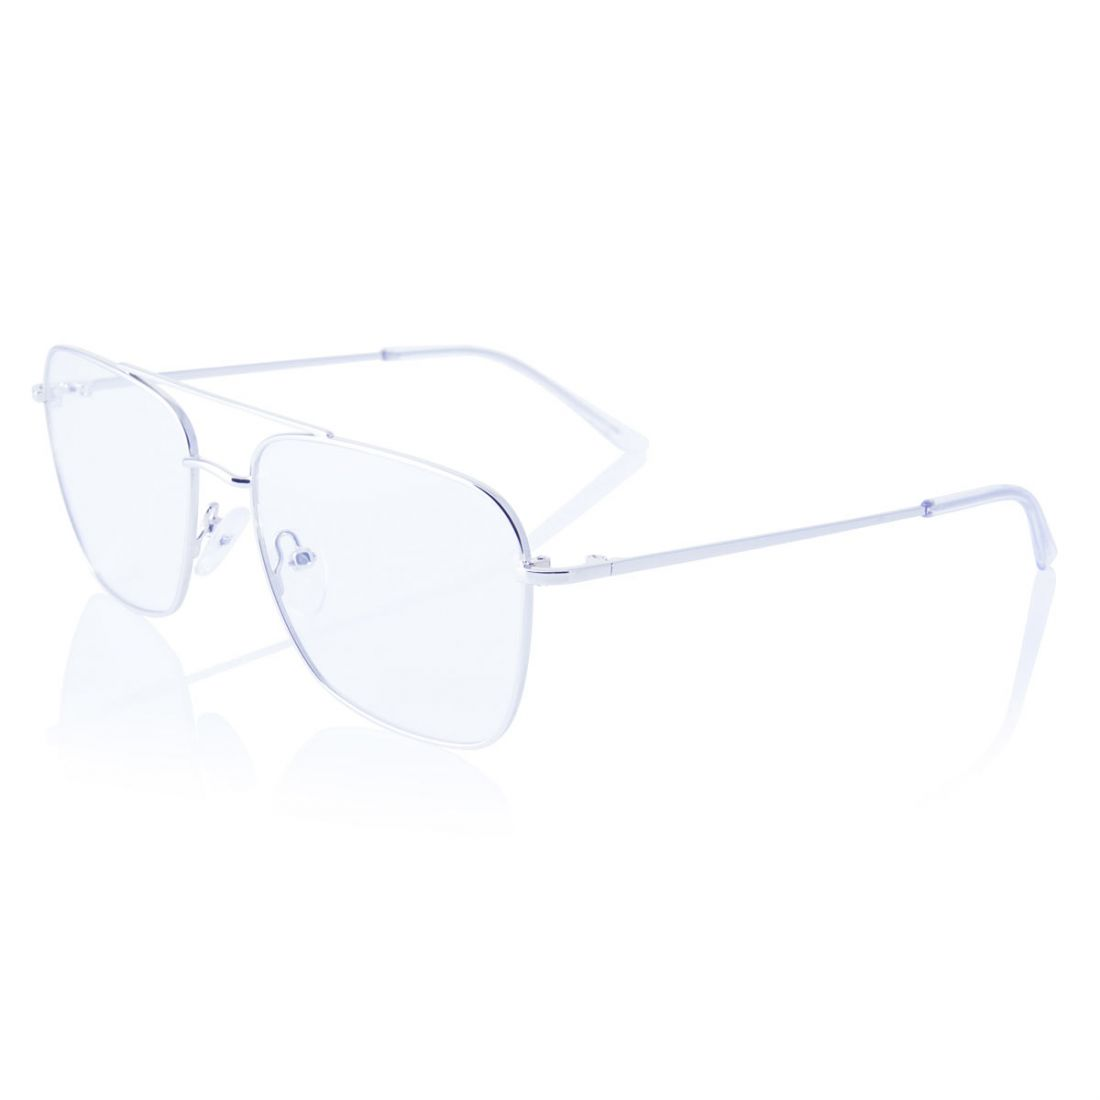 5f69b8c3a3 NO POP - glasses metal frame in gold silver color for women men